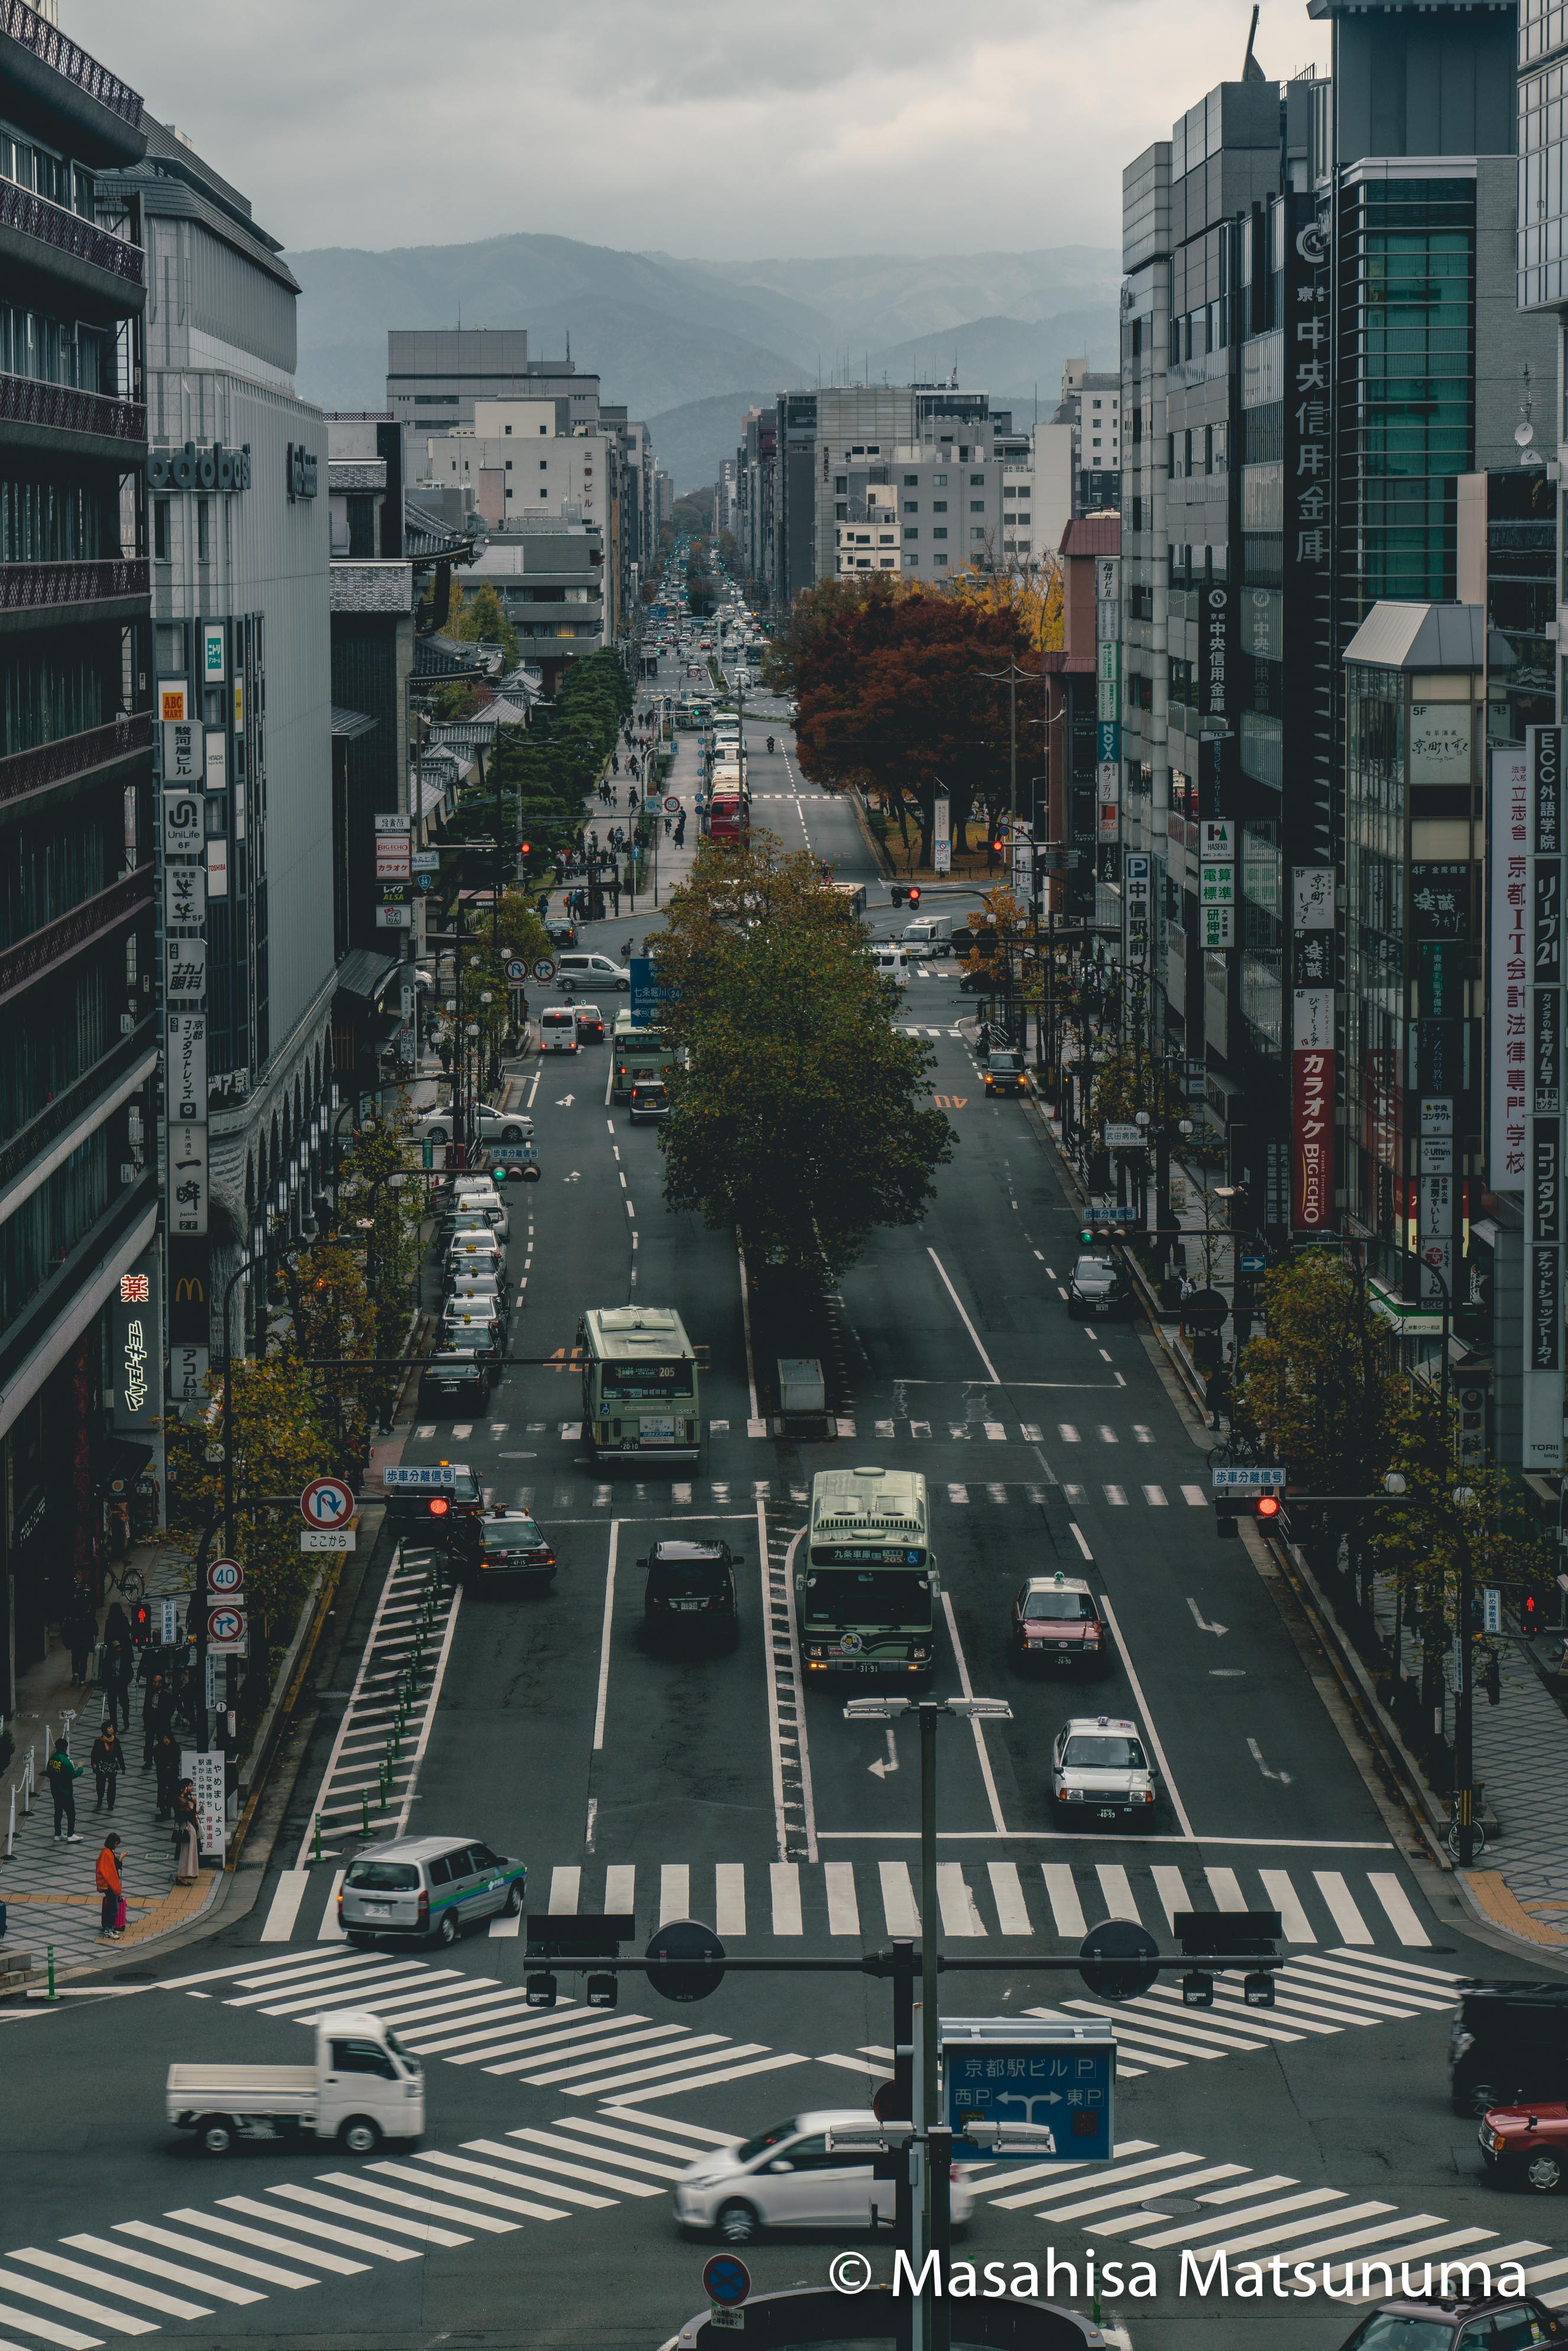 A view from Kyoto Station